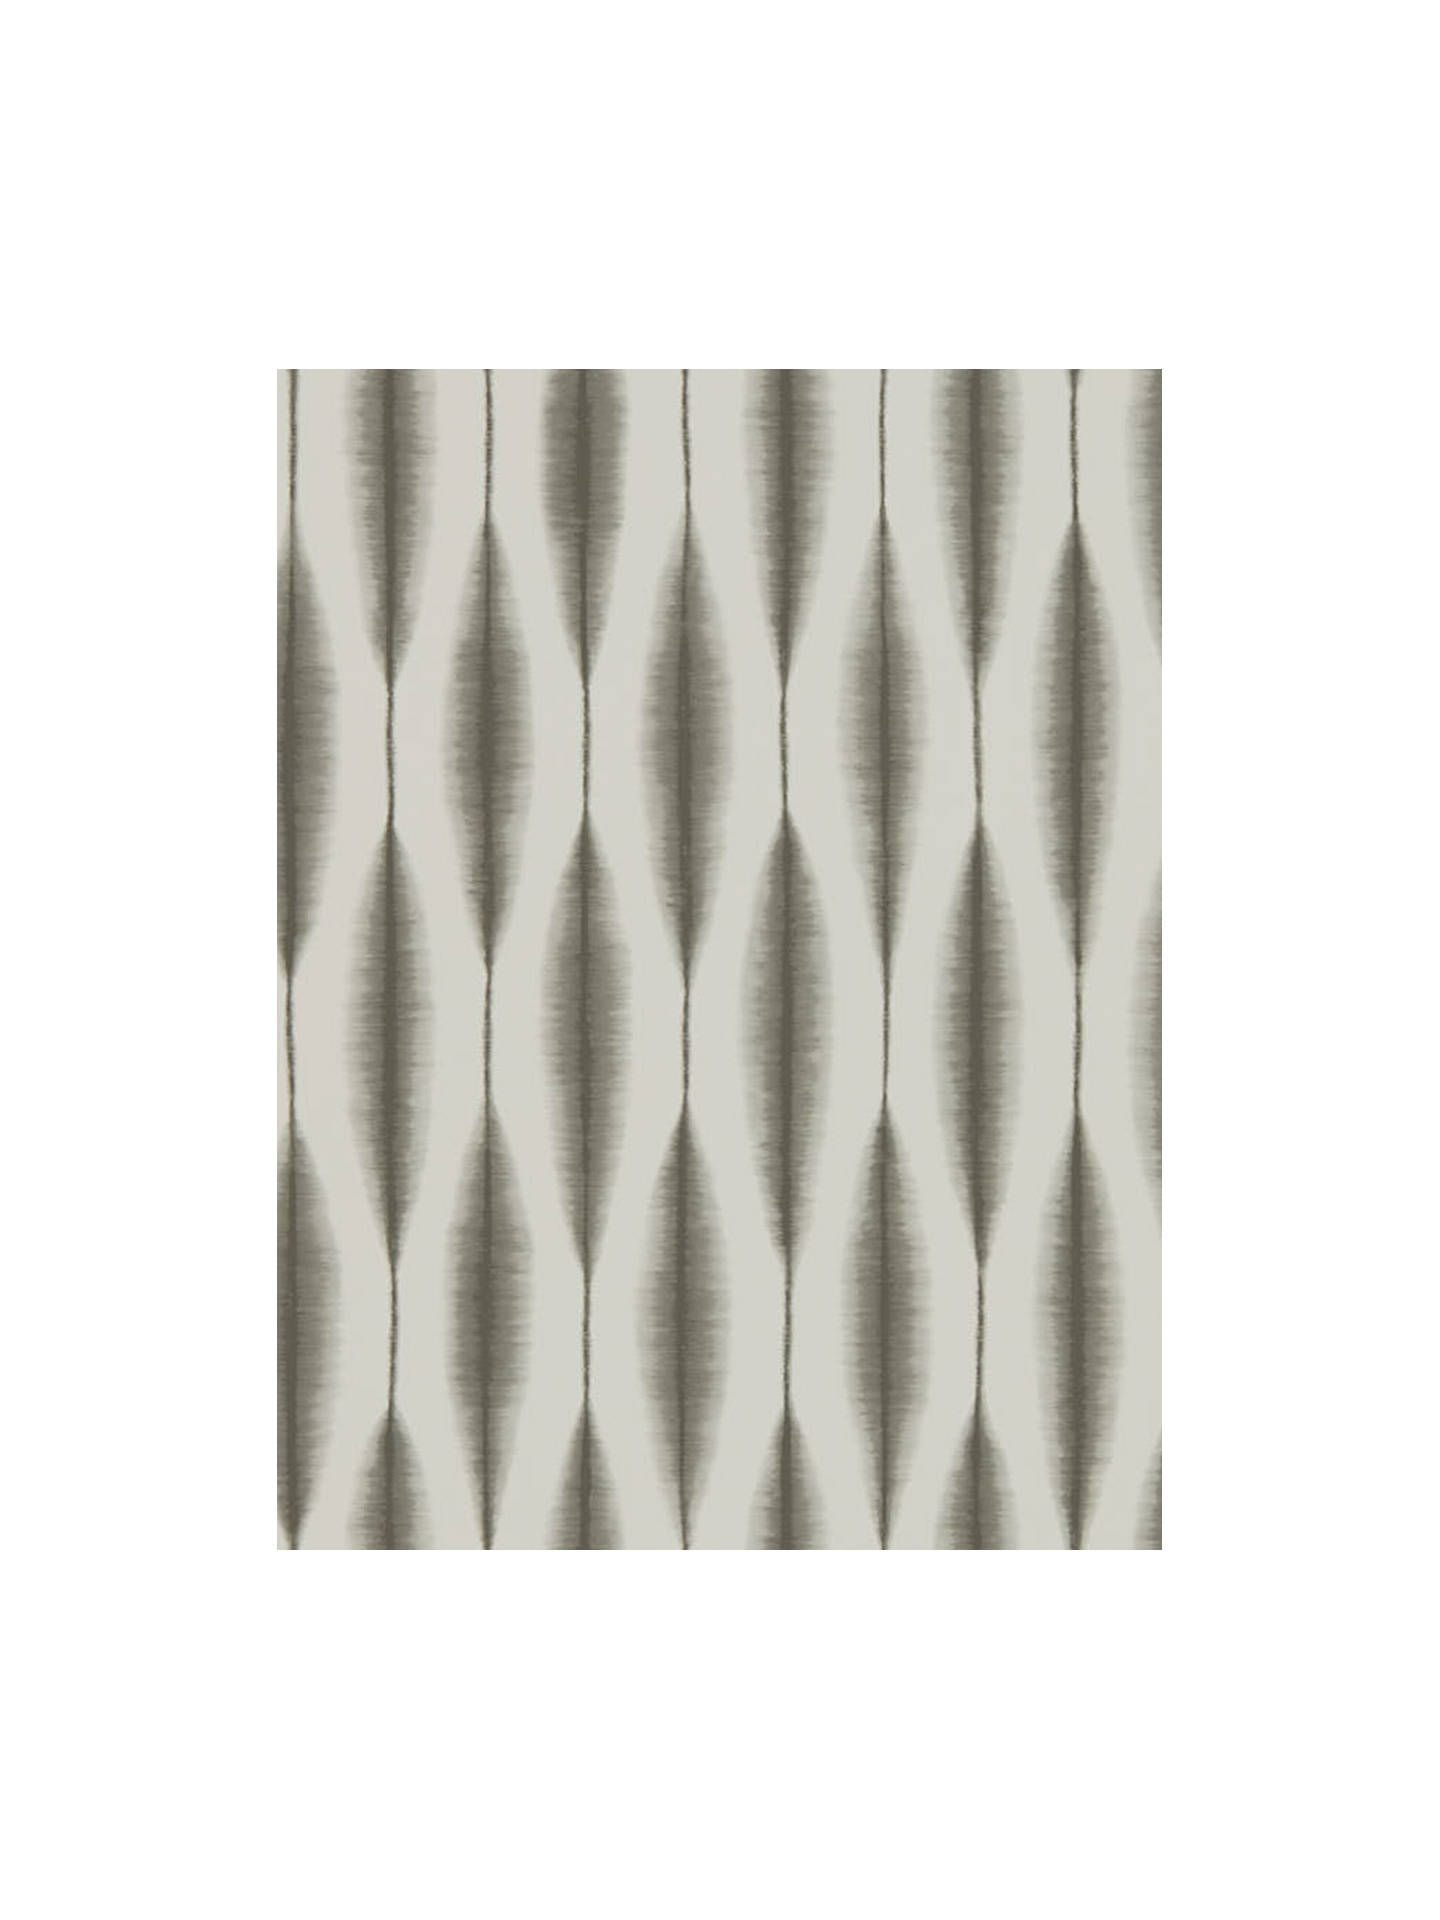 Buy Scion Kasuri Wallpaper, Porchini 111936 Online at johnlewis.com